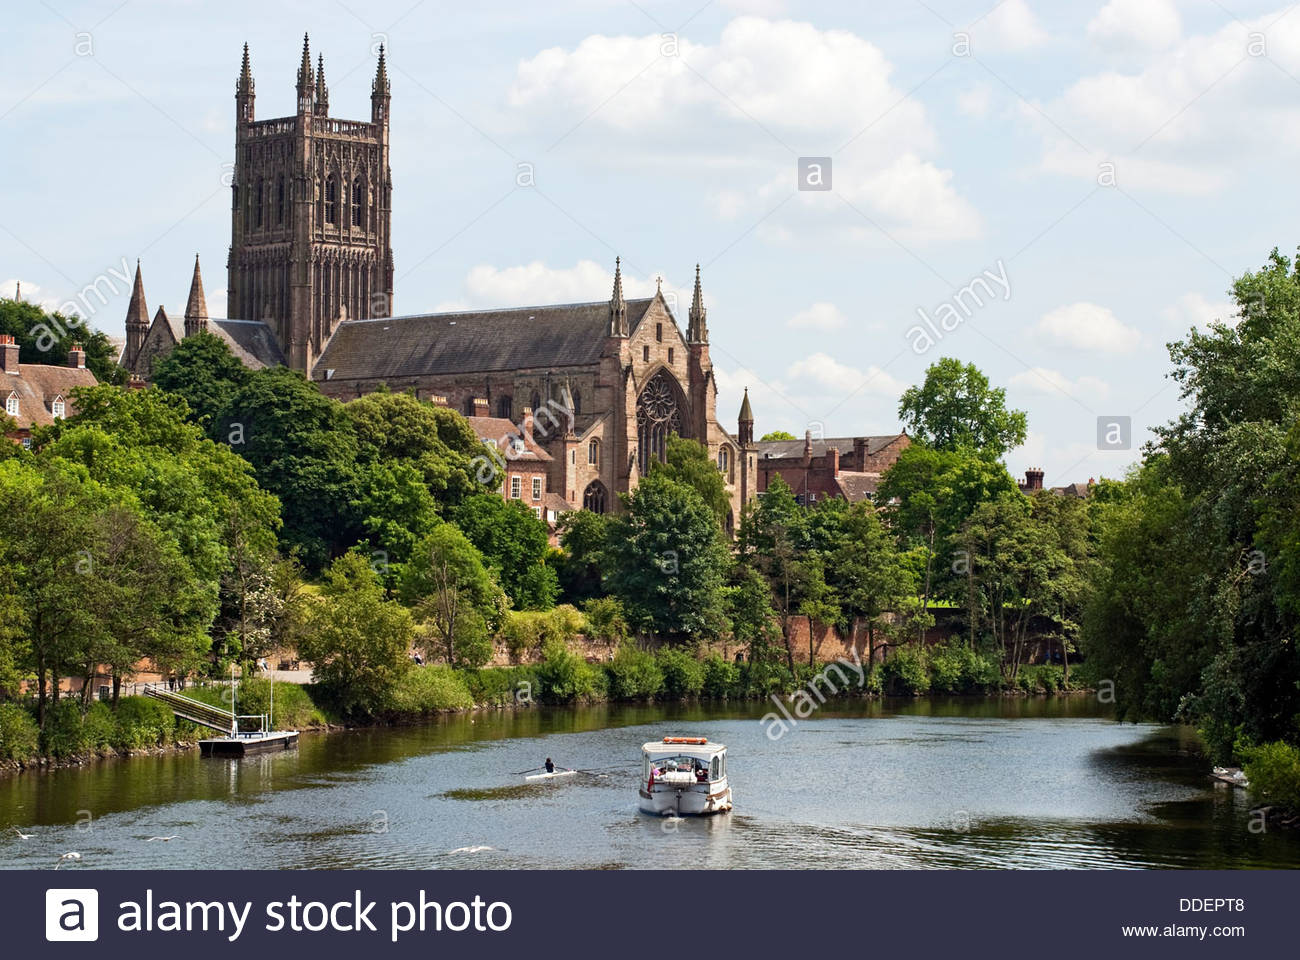 Worcester Cathedral is an Anglican cathedral in Worcester, England; situated on a bank overlooking the River Severn. - Stock Image